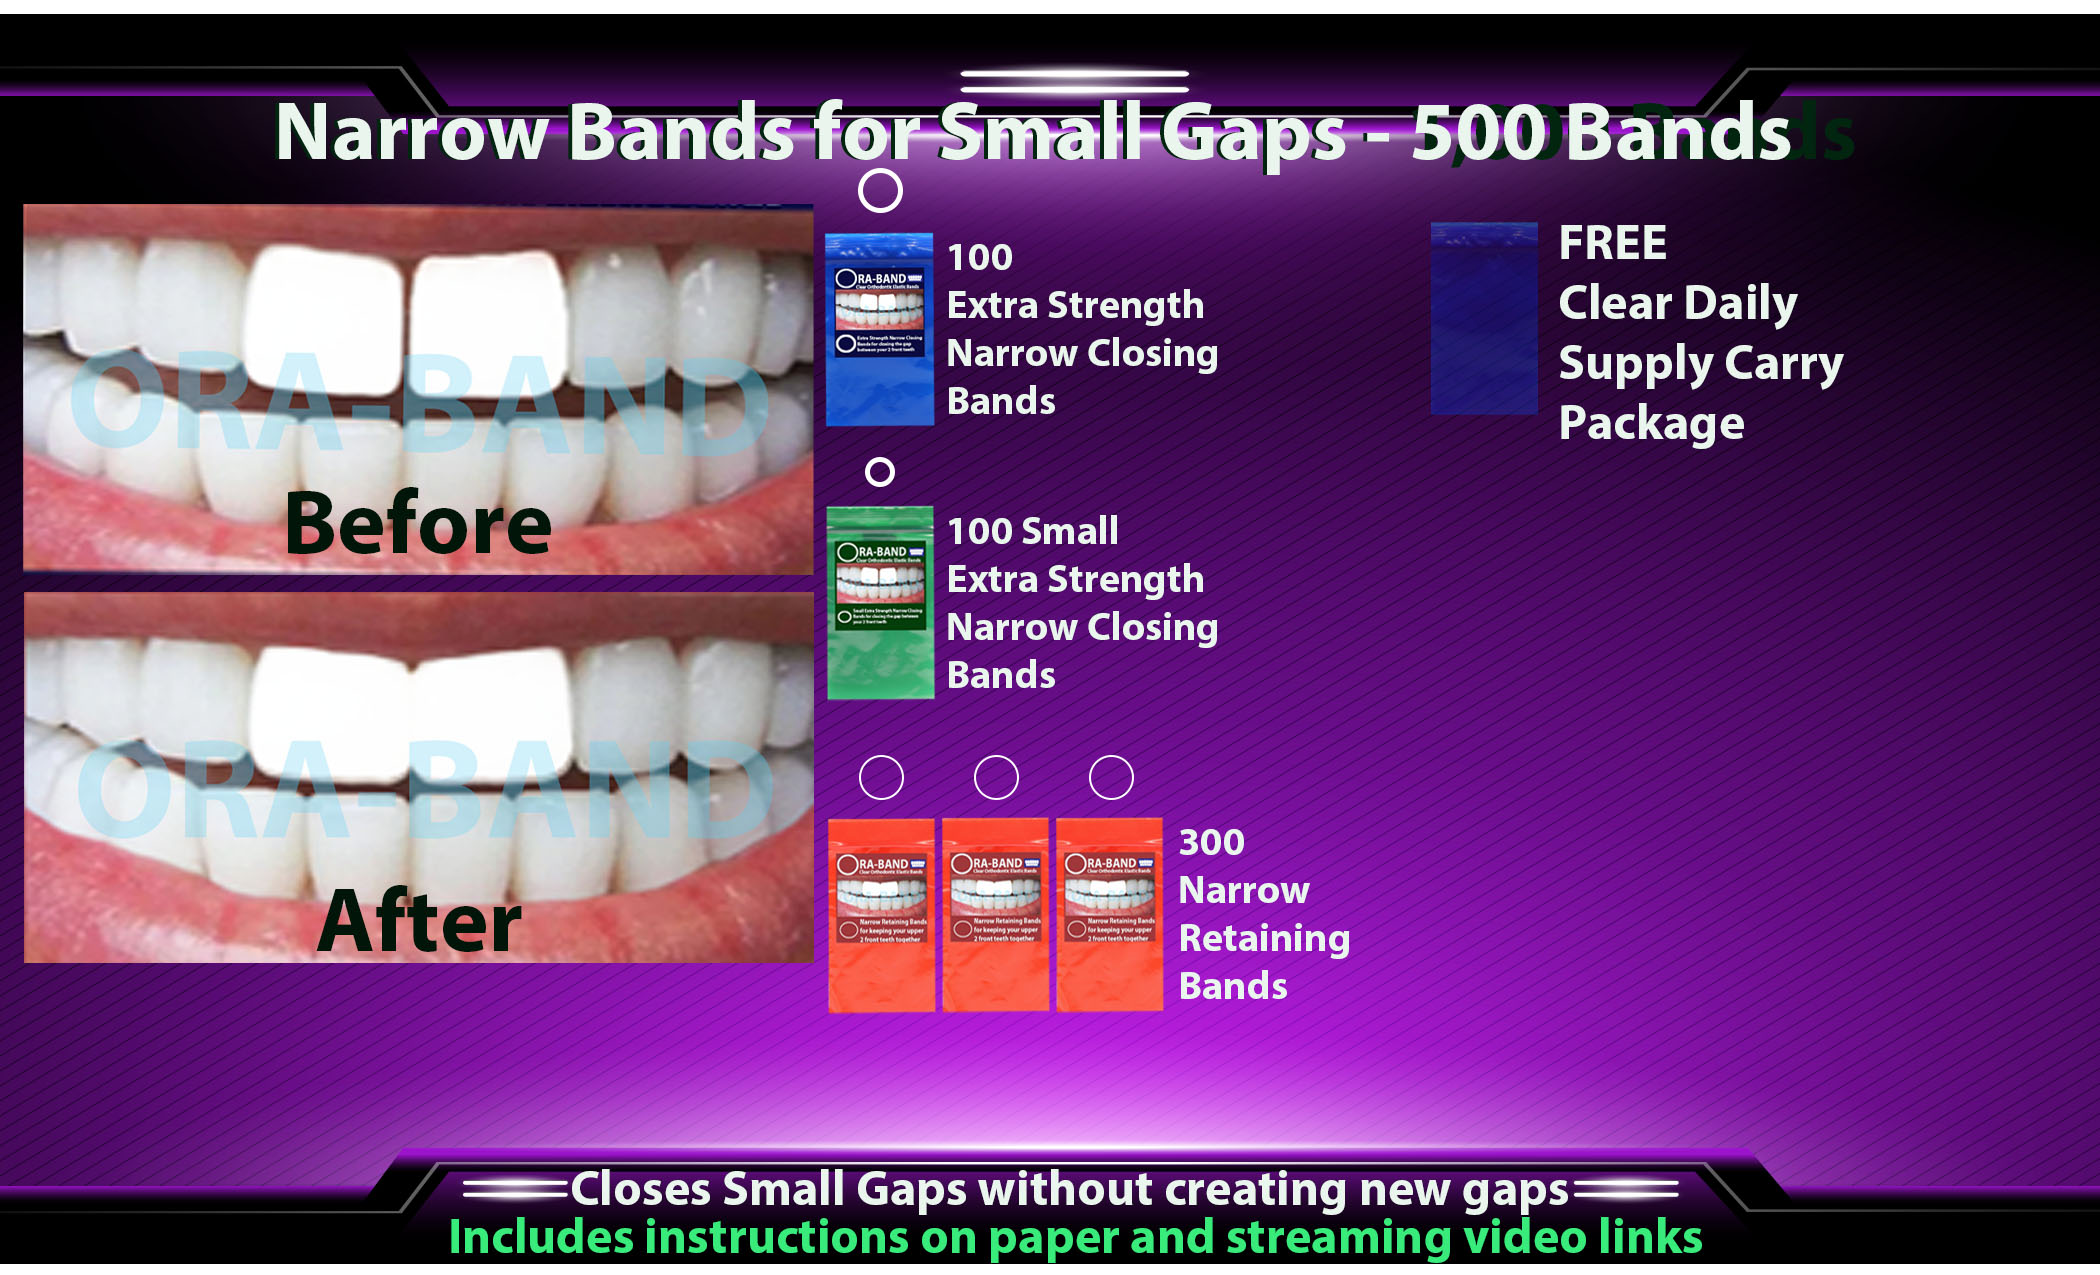 ORA-BAND 500 Band Narrow Bands Package for  Small Gaps between your 2 front teeth